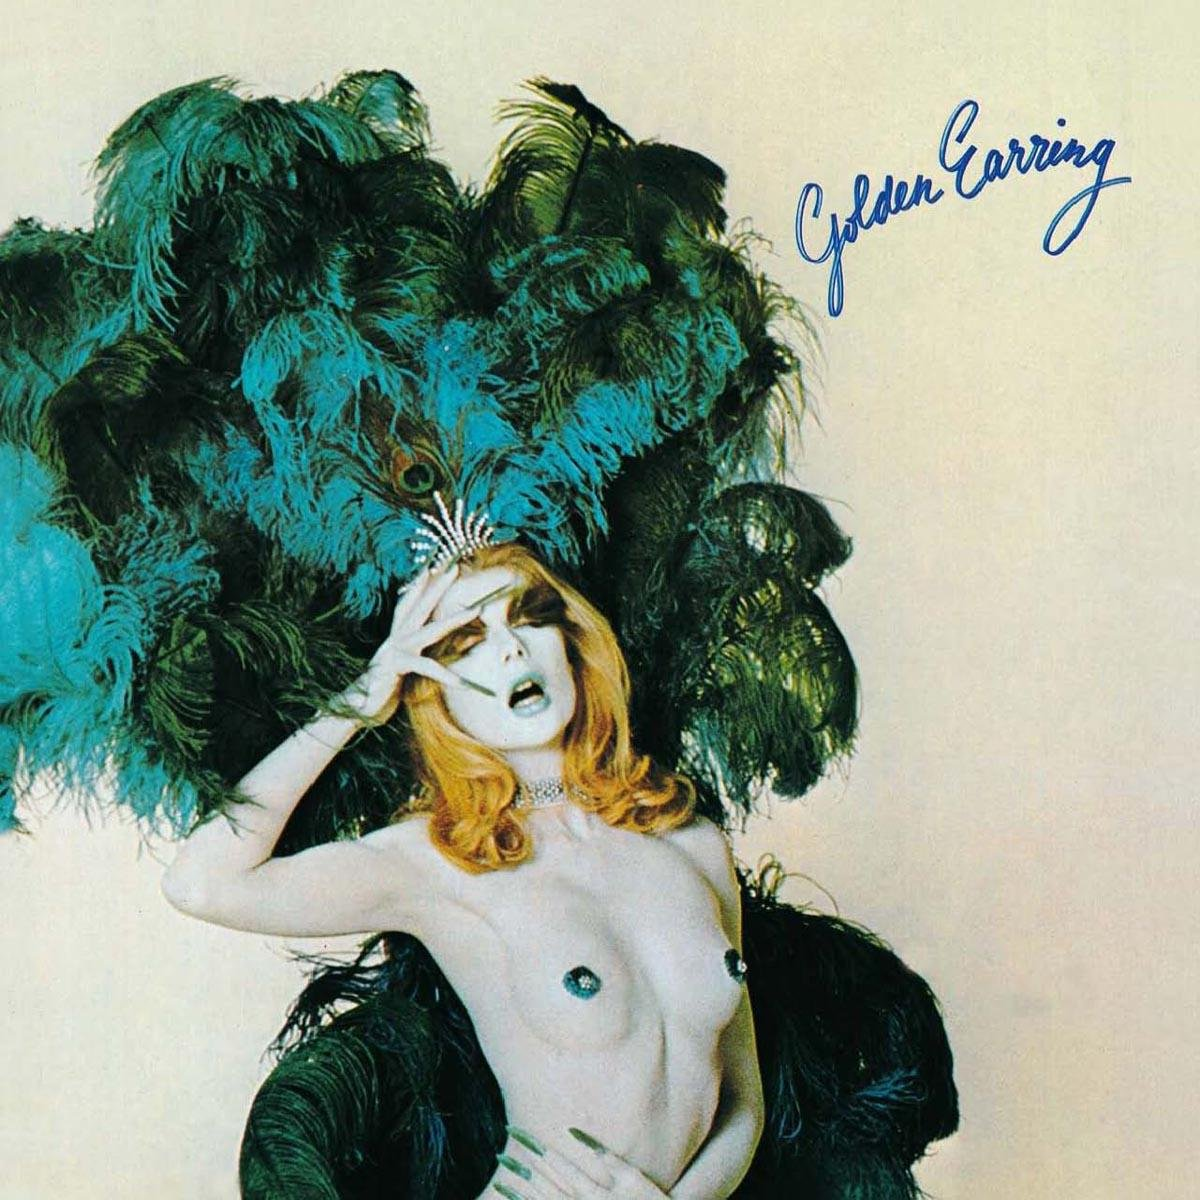 Golden Earring Moontan HQ Vinyl Gatefold